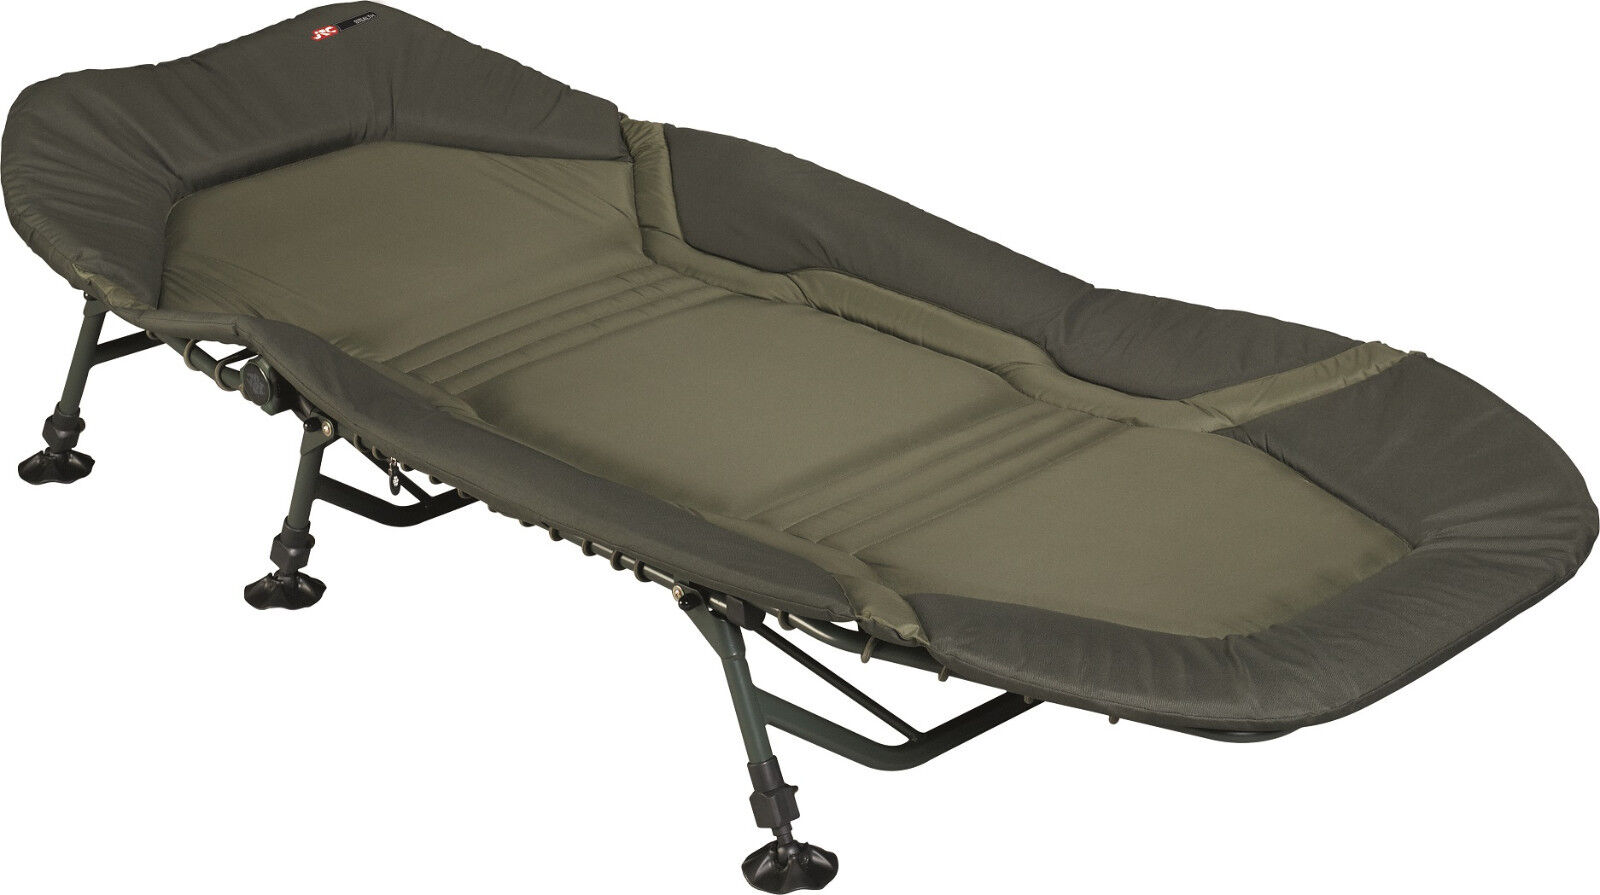 JRC Stealth Excel Bedchair 1294357 Carpa LETTINO LETTINO ANGEL LETTINO Bed Chair